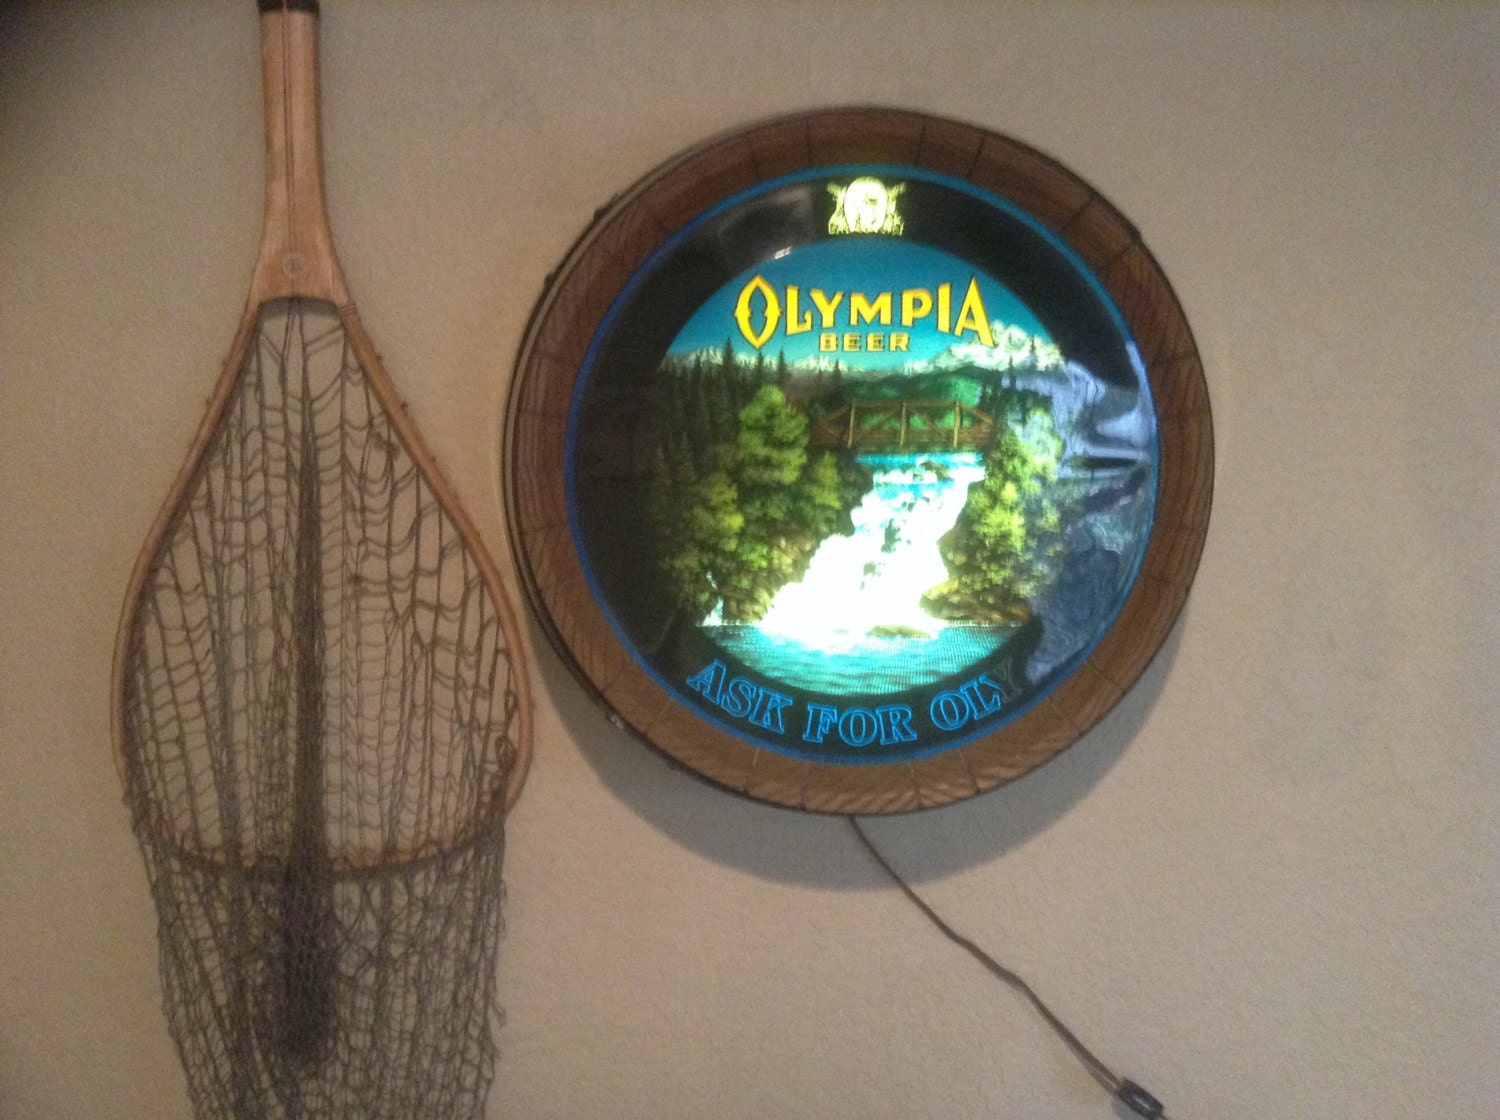 Olympia Beer Barrel Waterfall Sign With New By